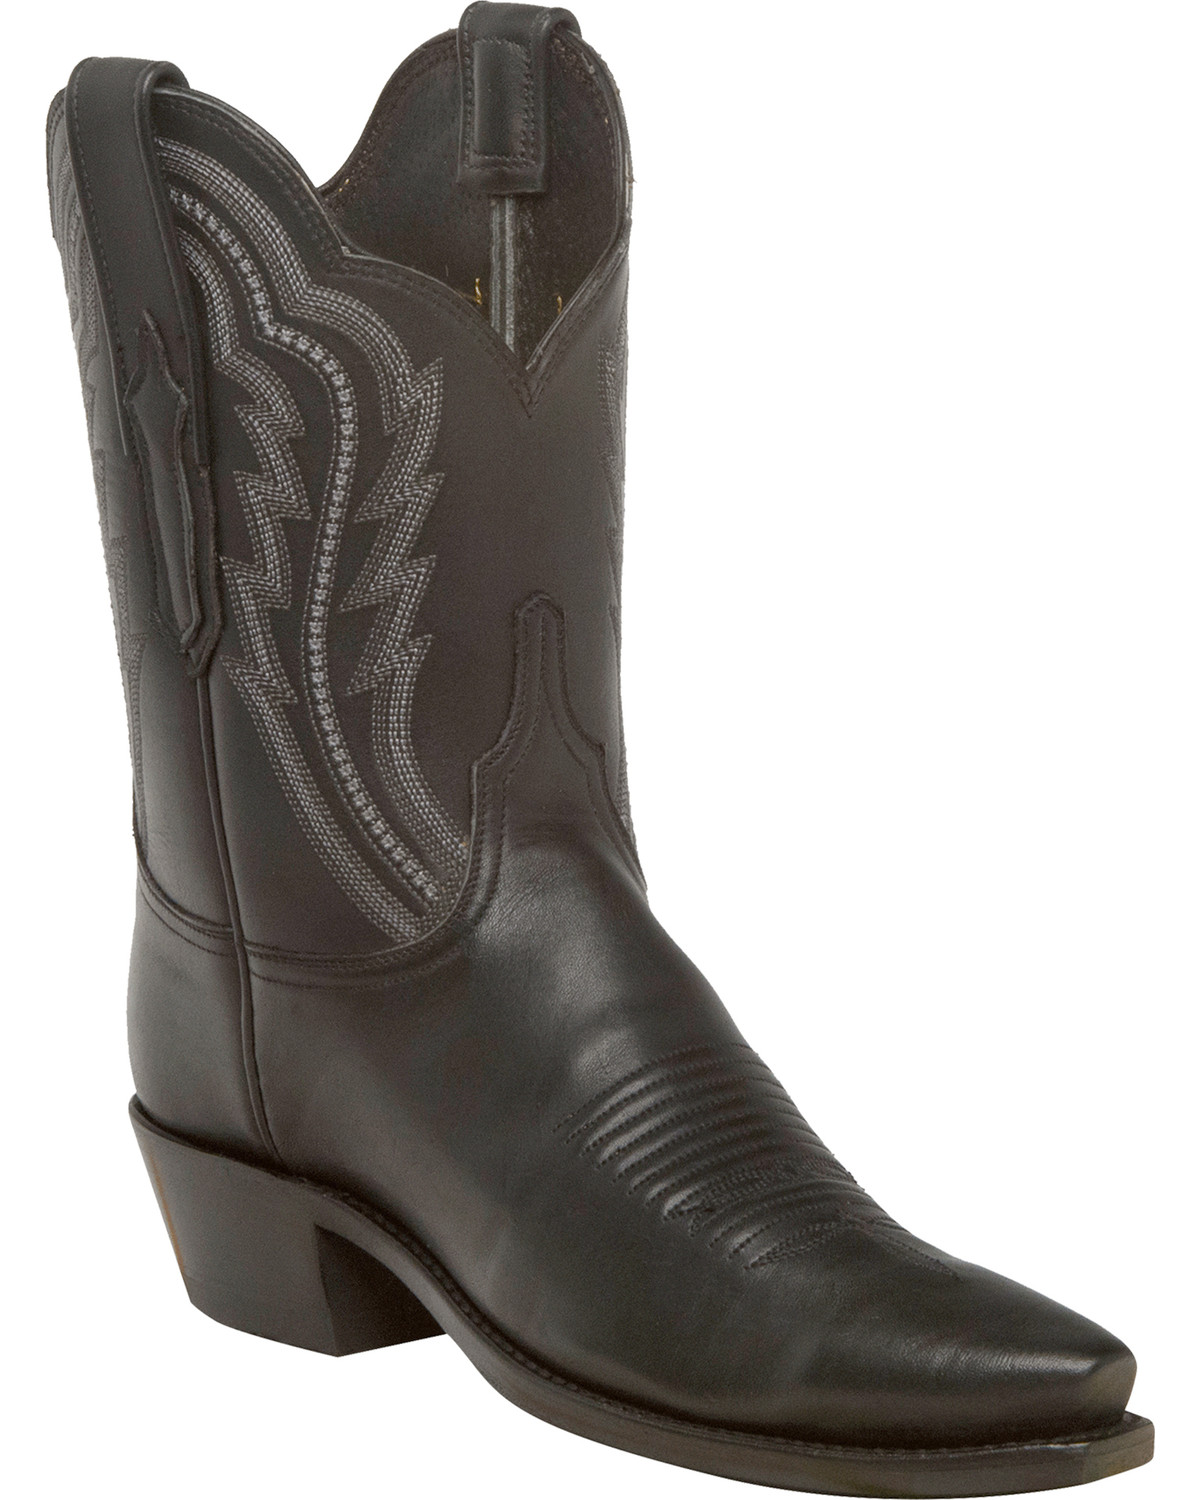 d465e73b154 Lucchese Women s Handmade Hattie Black Goat Leather Short Western Boots - Snip  Toe